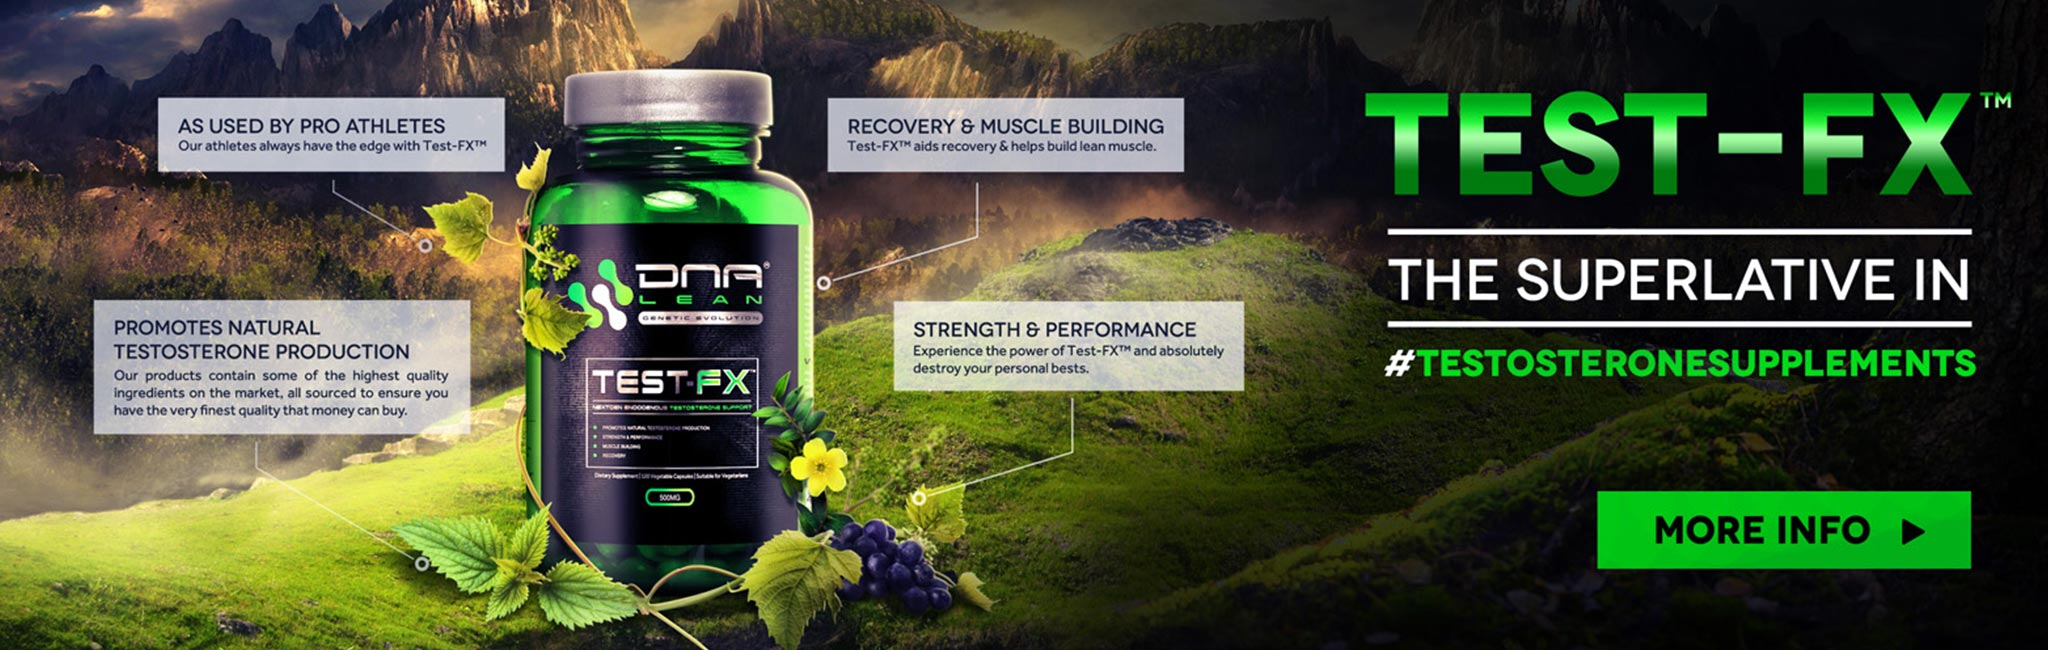 DNA Lean® Test-FX™ is a revolutionary new generation of natural testosterone booster